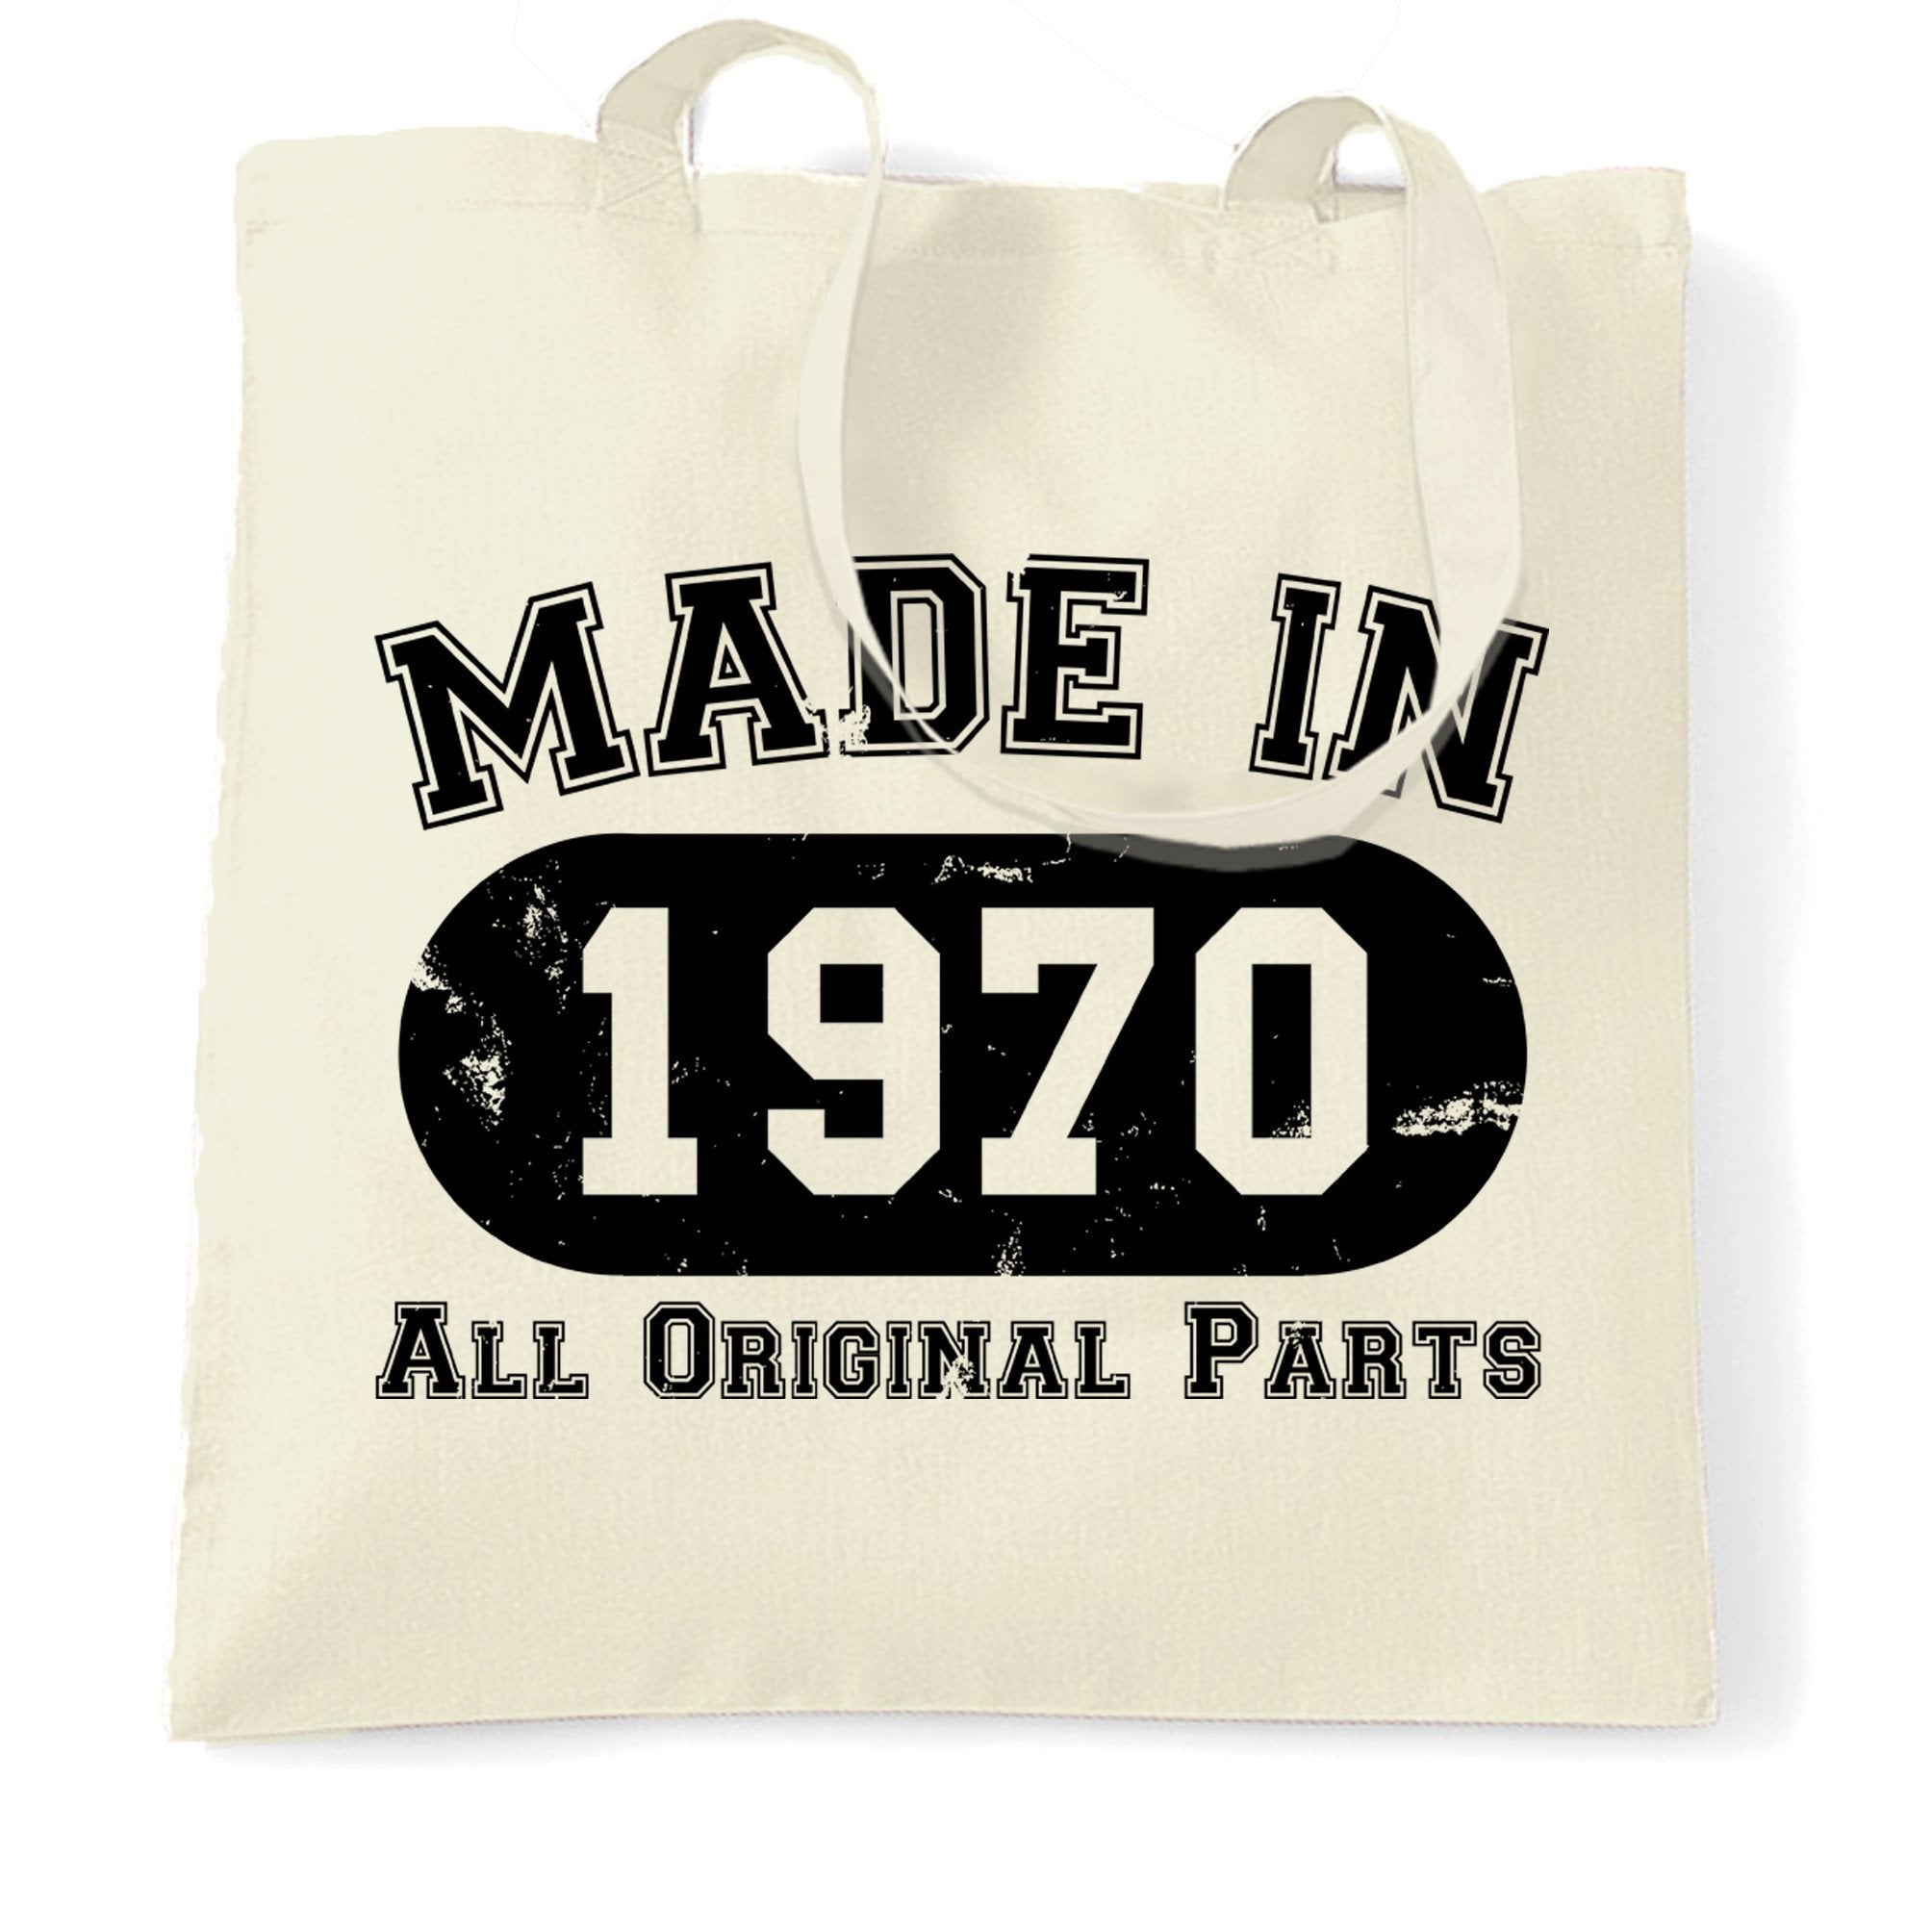 Made in 1970 All Original Parts Tote Bag [Distressed]